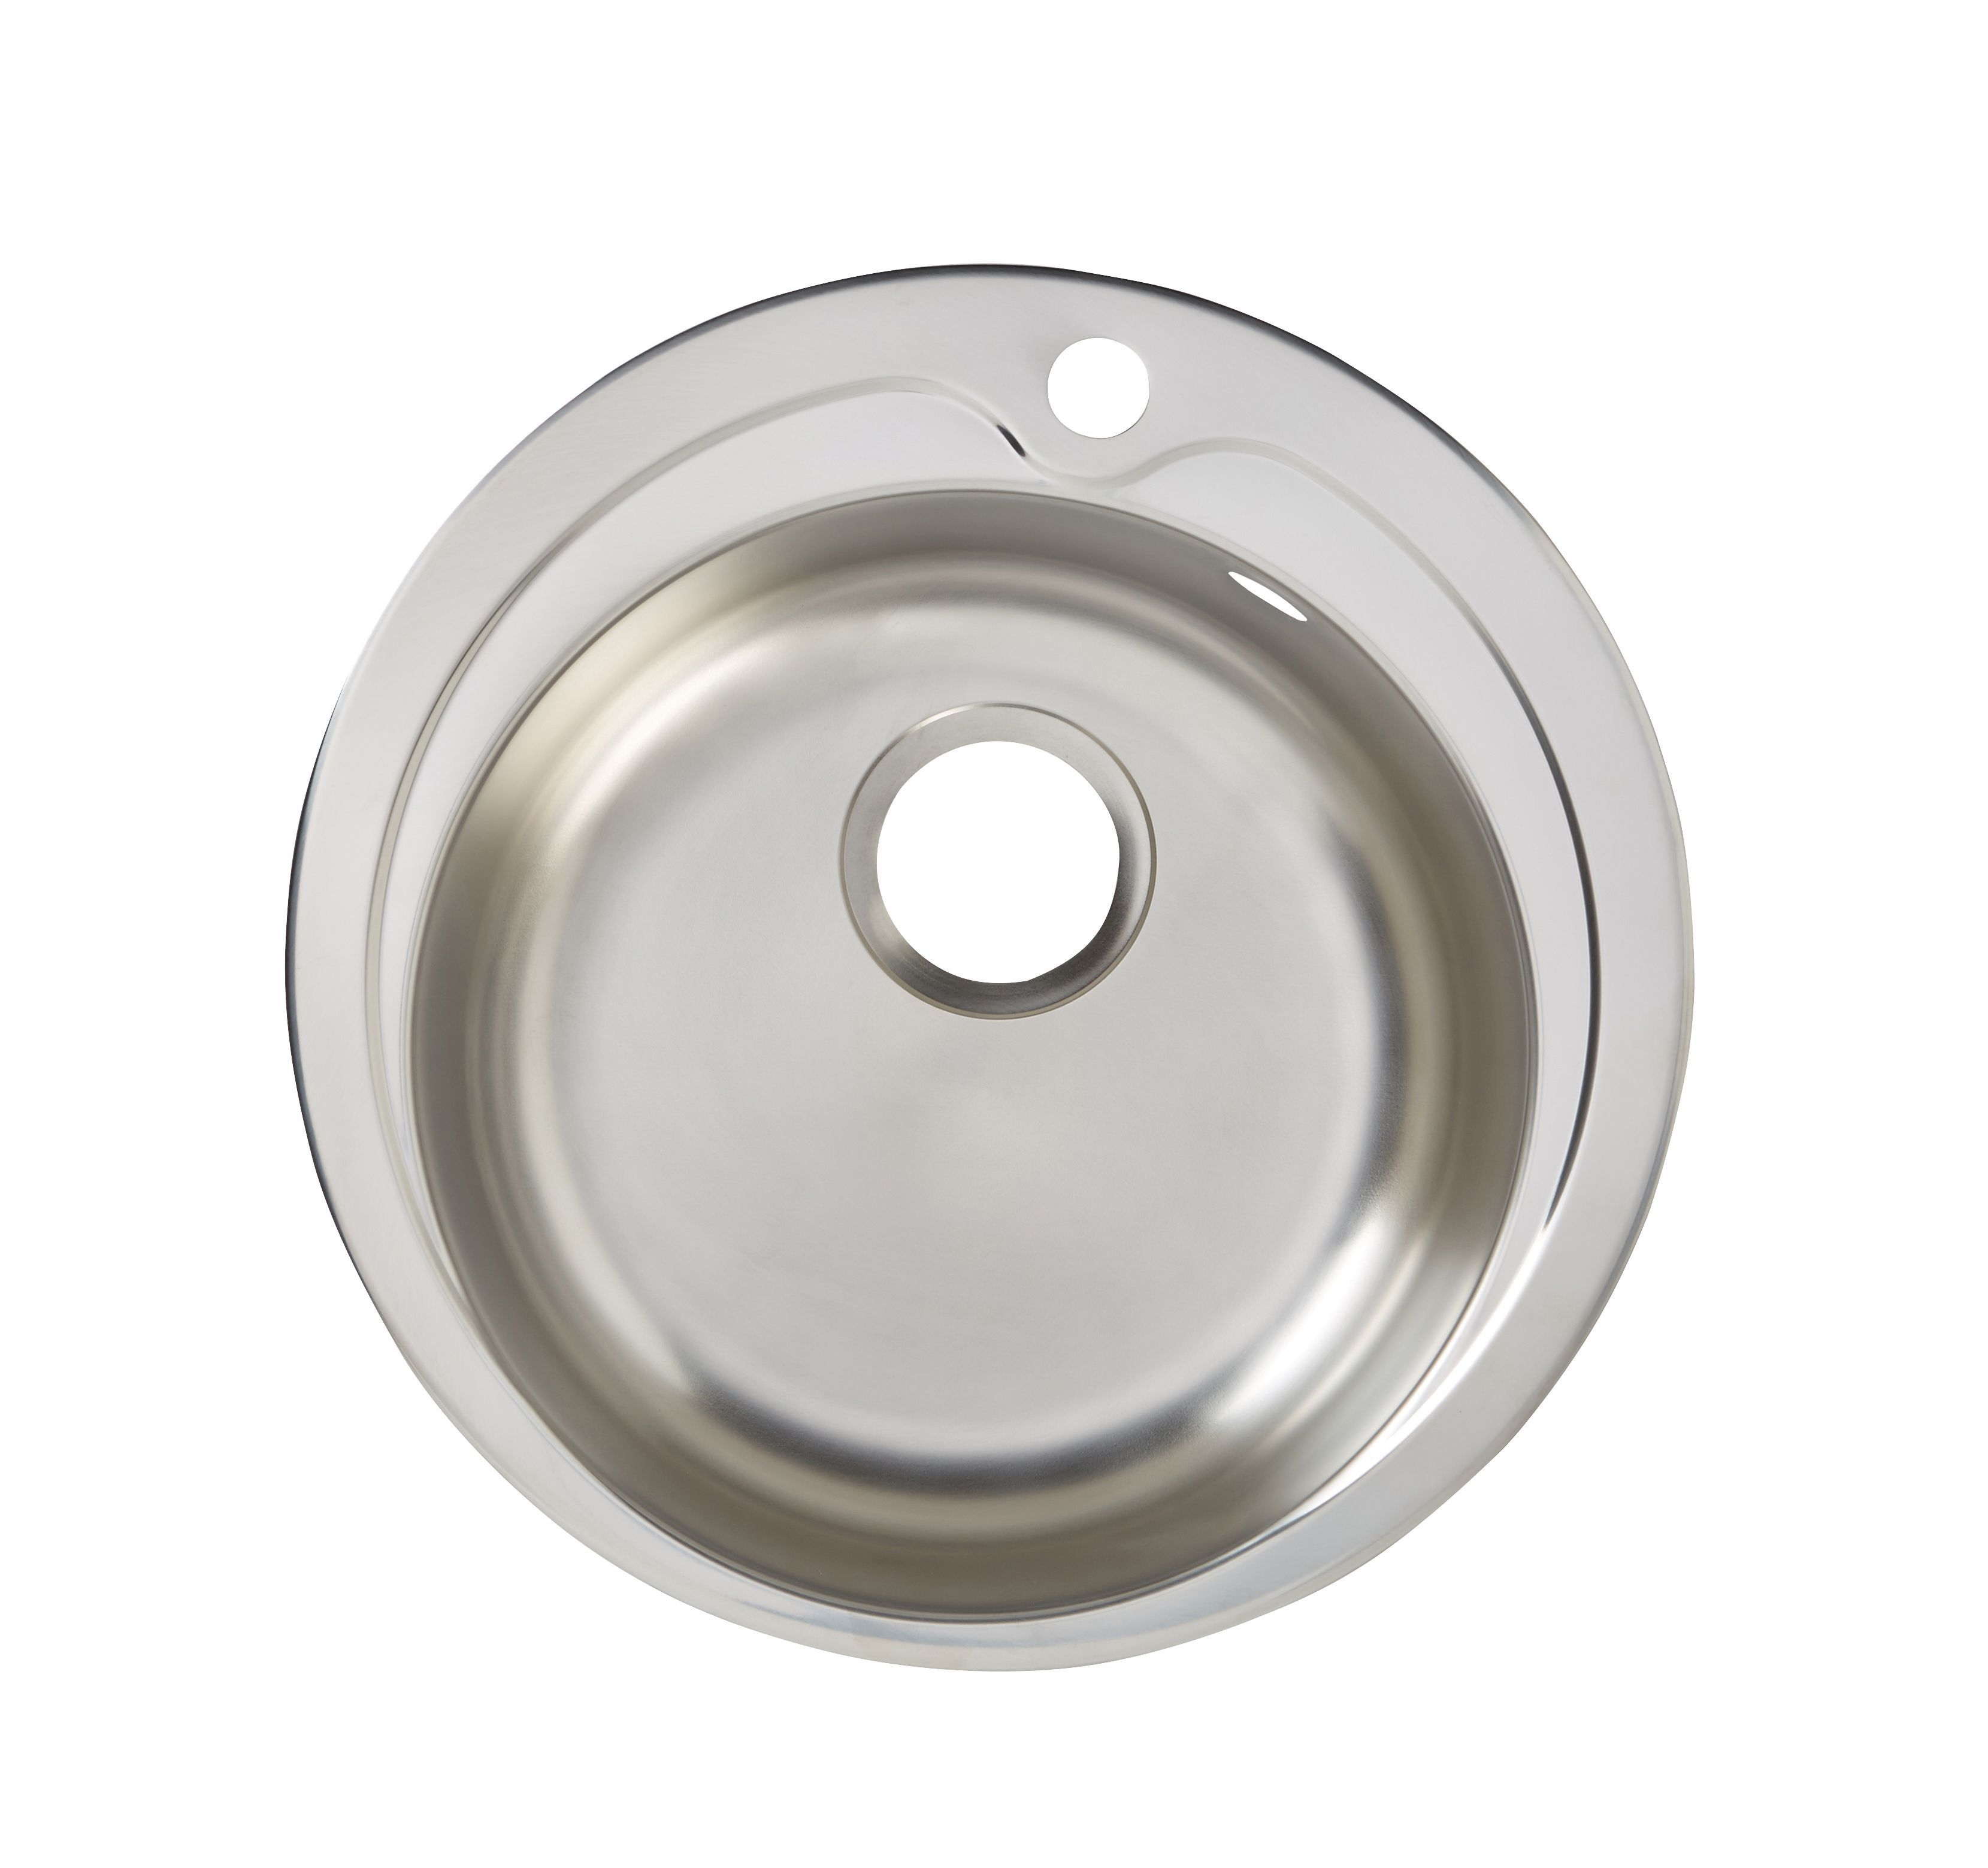 Quimby 1 Bowl Polished Stainless Steel Round Sink